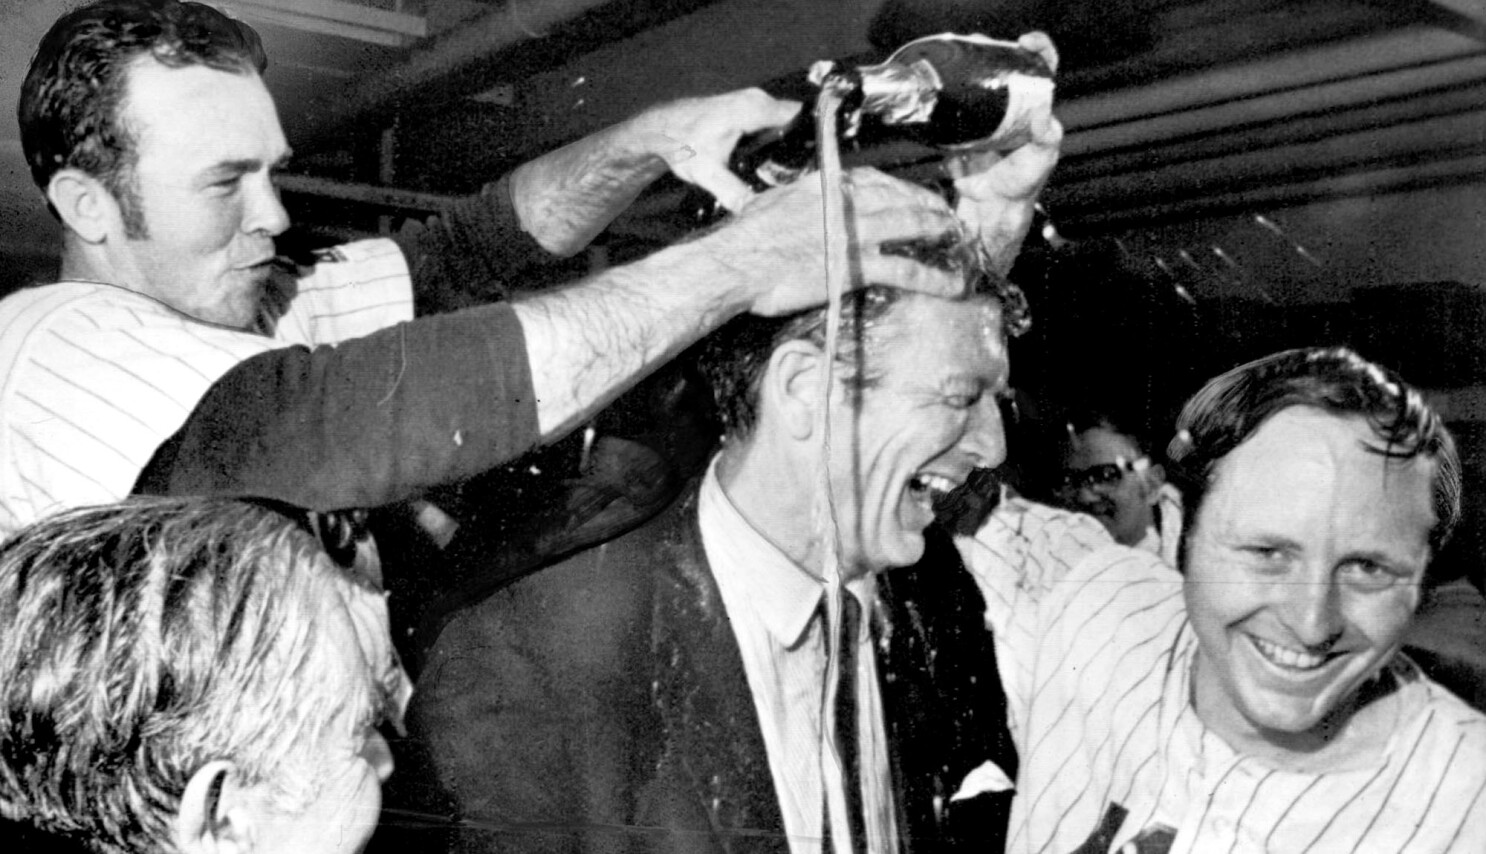 The 1969 World Series champion Mets remain Amazin' 50 years later